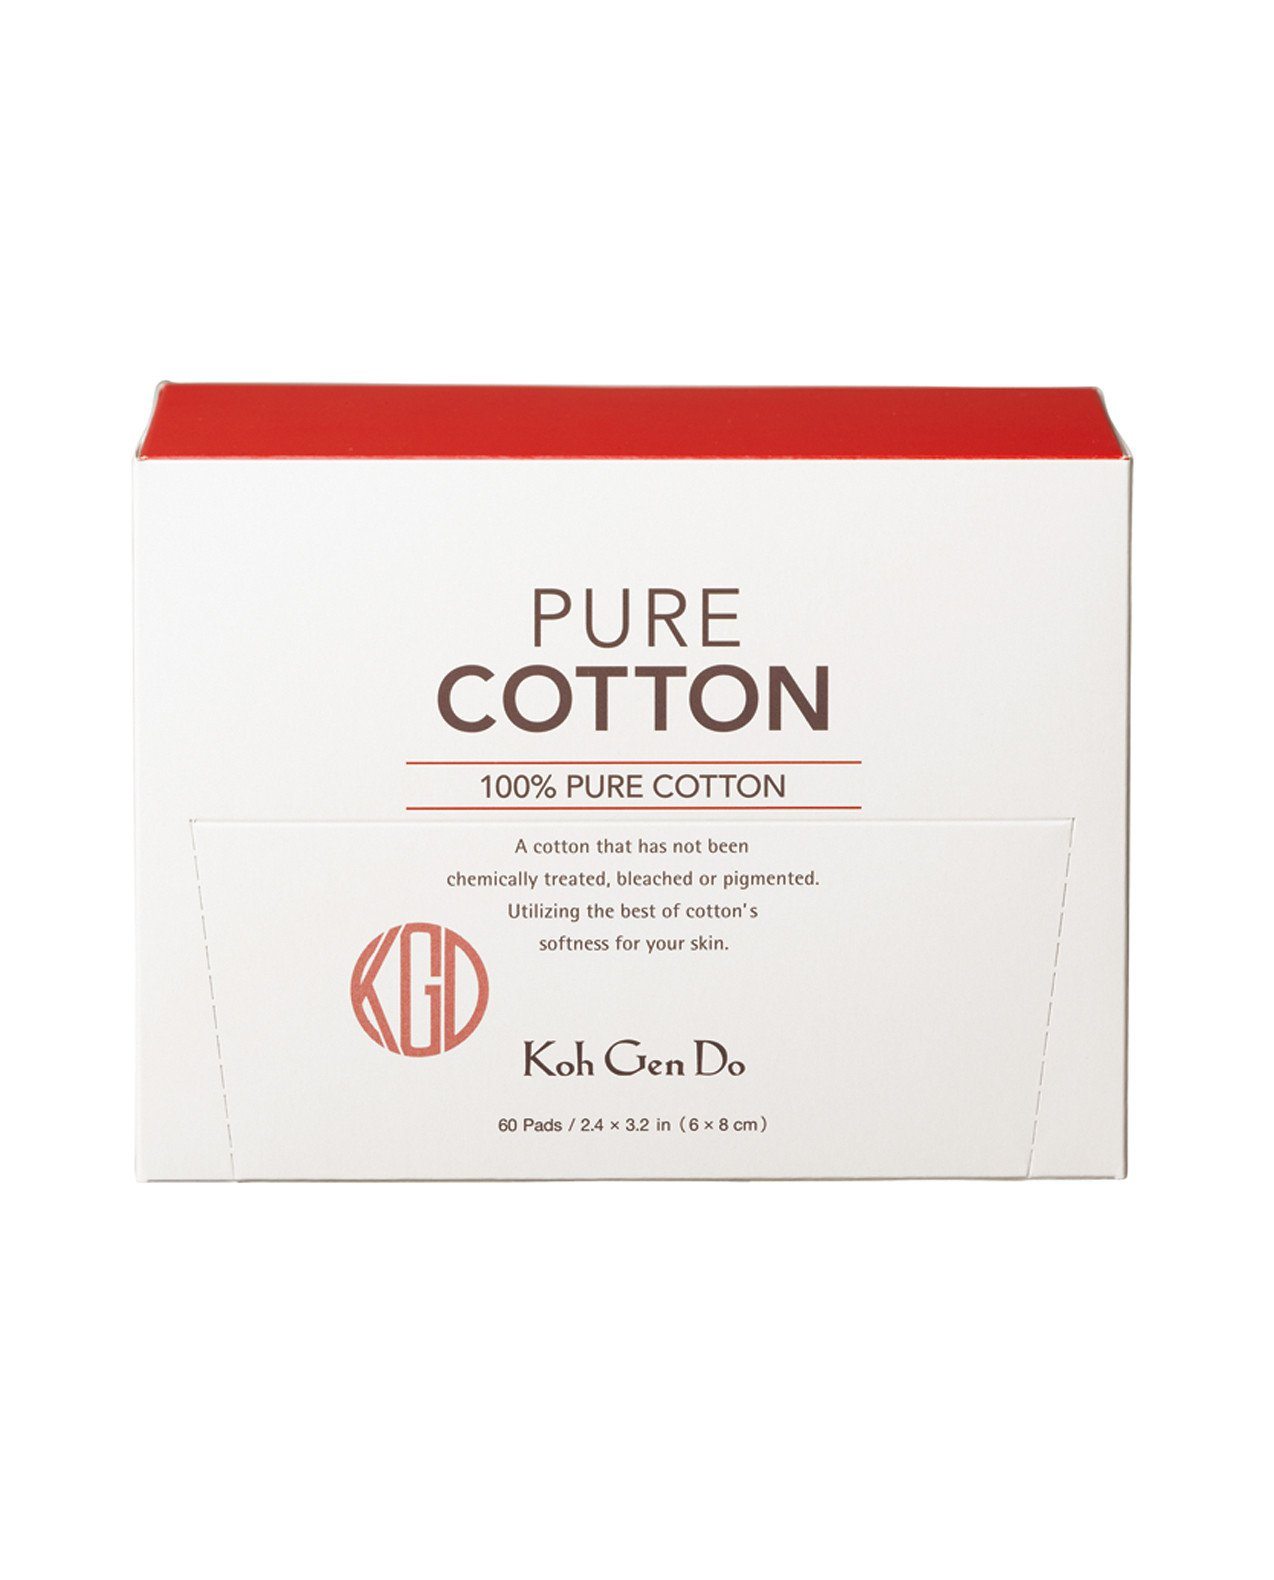 Pure Cotton Image